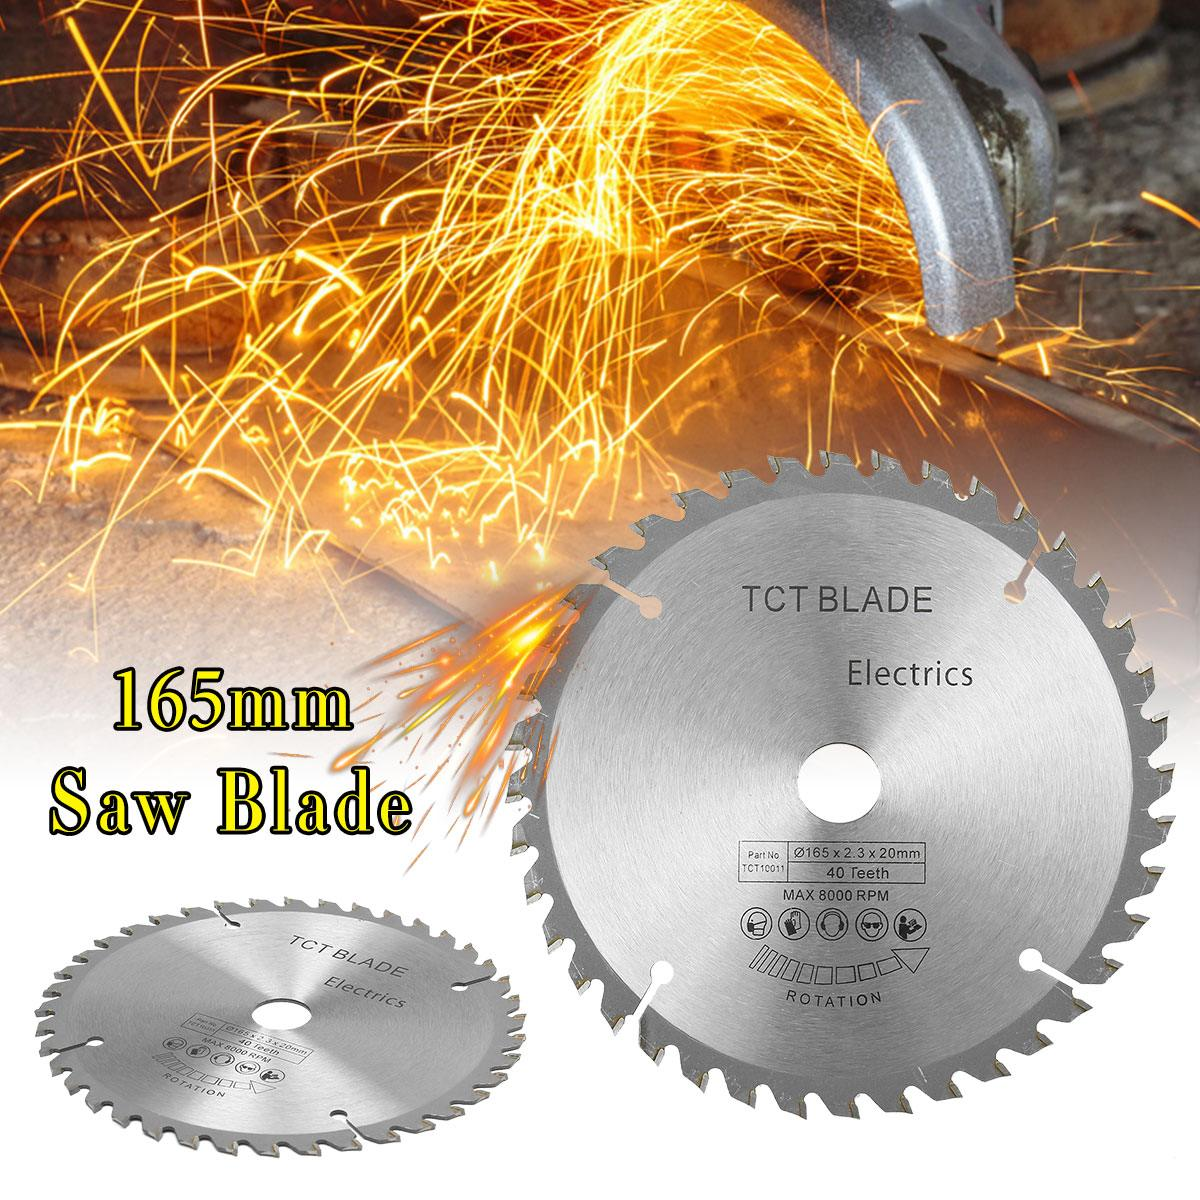 165mm Circular Saw Blade 40 Teeth Cutting Disc With Reduction Ring High Speed Steel